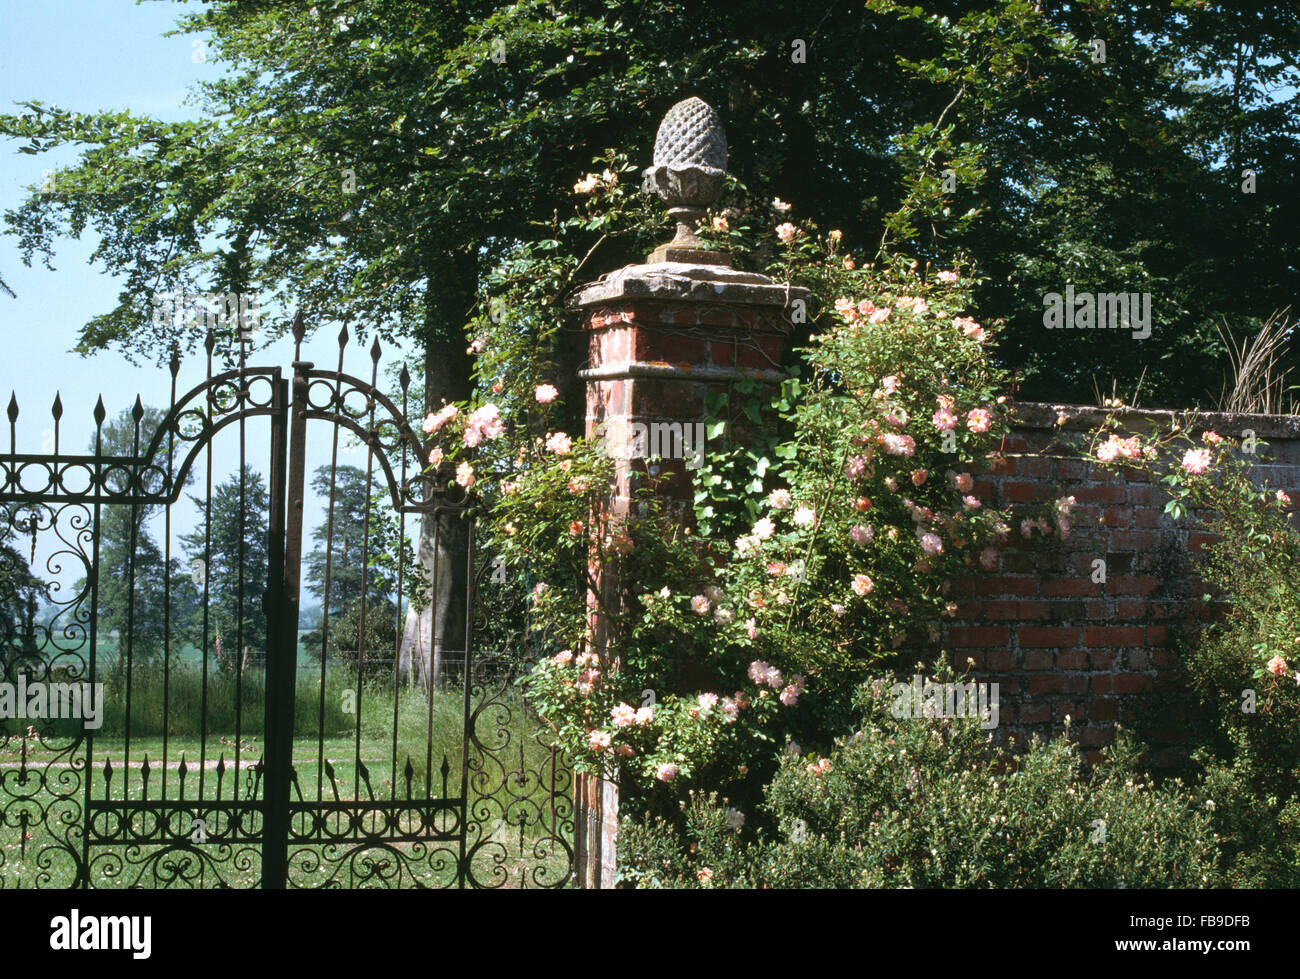 Ornate Wrought Iron Gates In Large Walled Garden With Pink Climbing Roses  On Wall And Pillar With A Stone Lollipop Finial